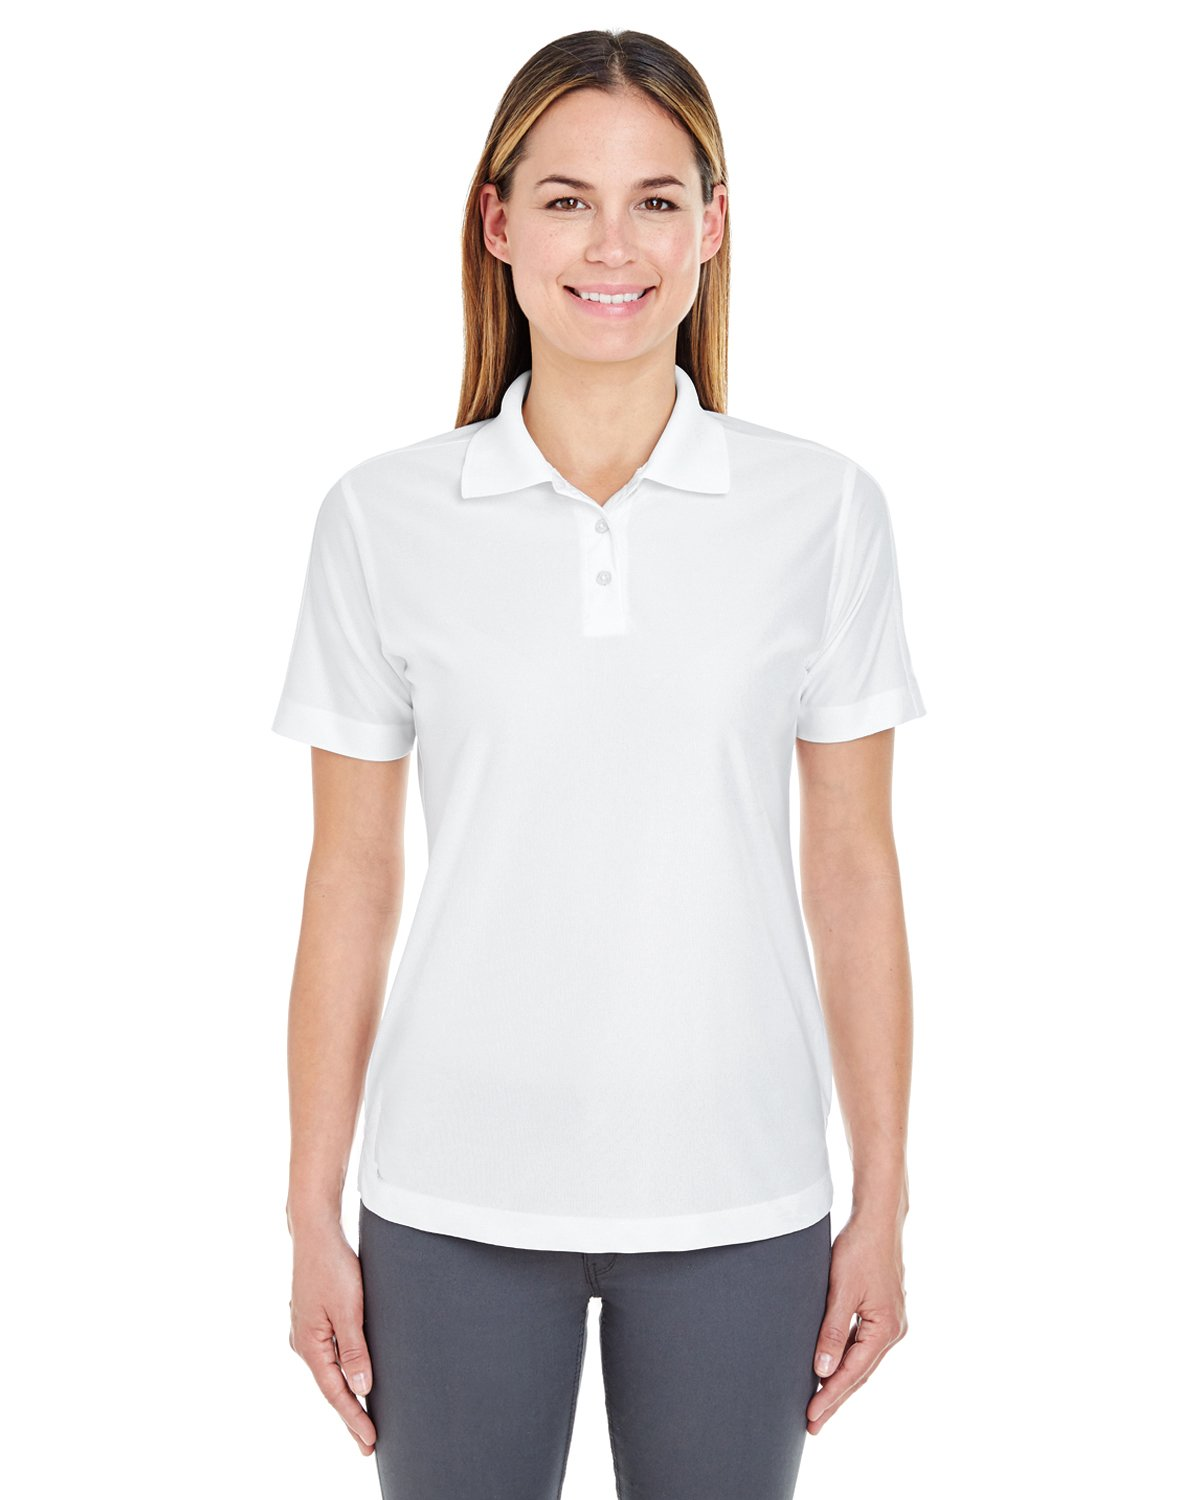 UltraClub Ladies' Cool & Dry Elite Polo Shirt, White, Medium. (Pack of 5) by UltraClub